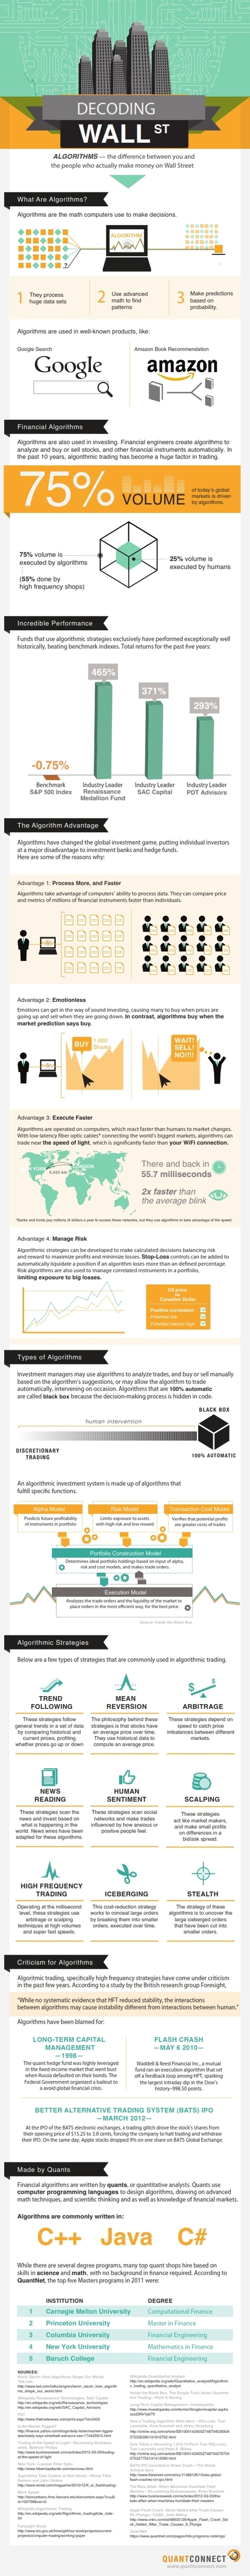 INFOGRAPHIC: Decoding Wall Street | Cloud Central | Scoop.it